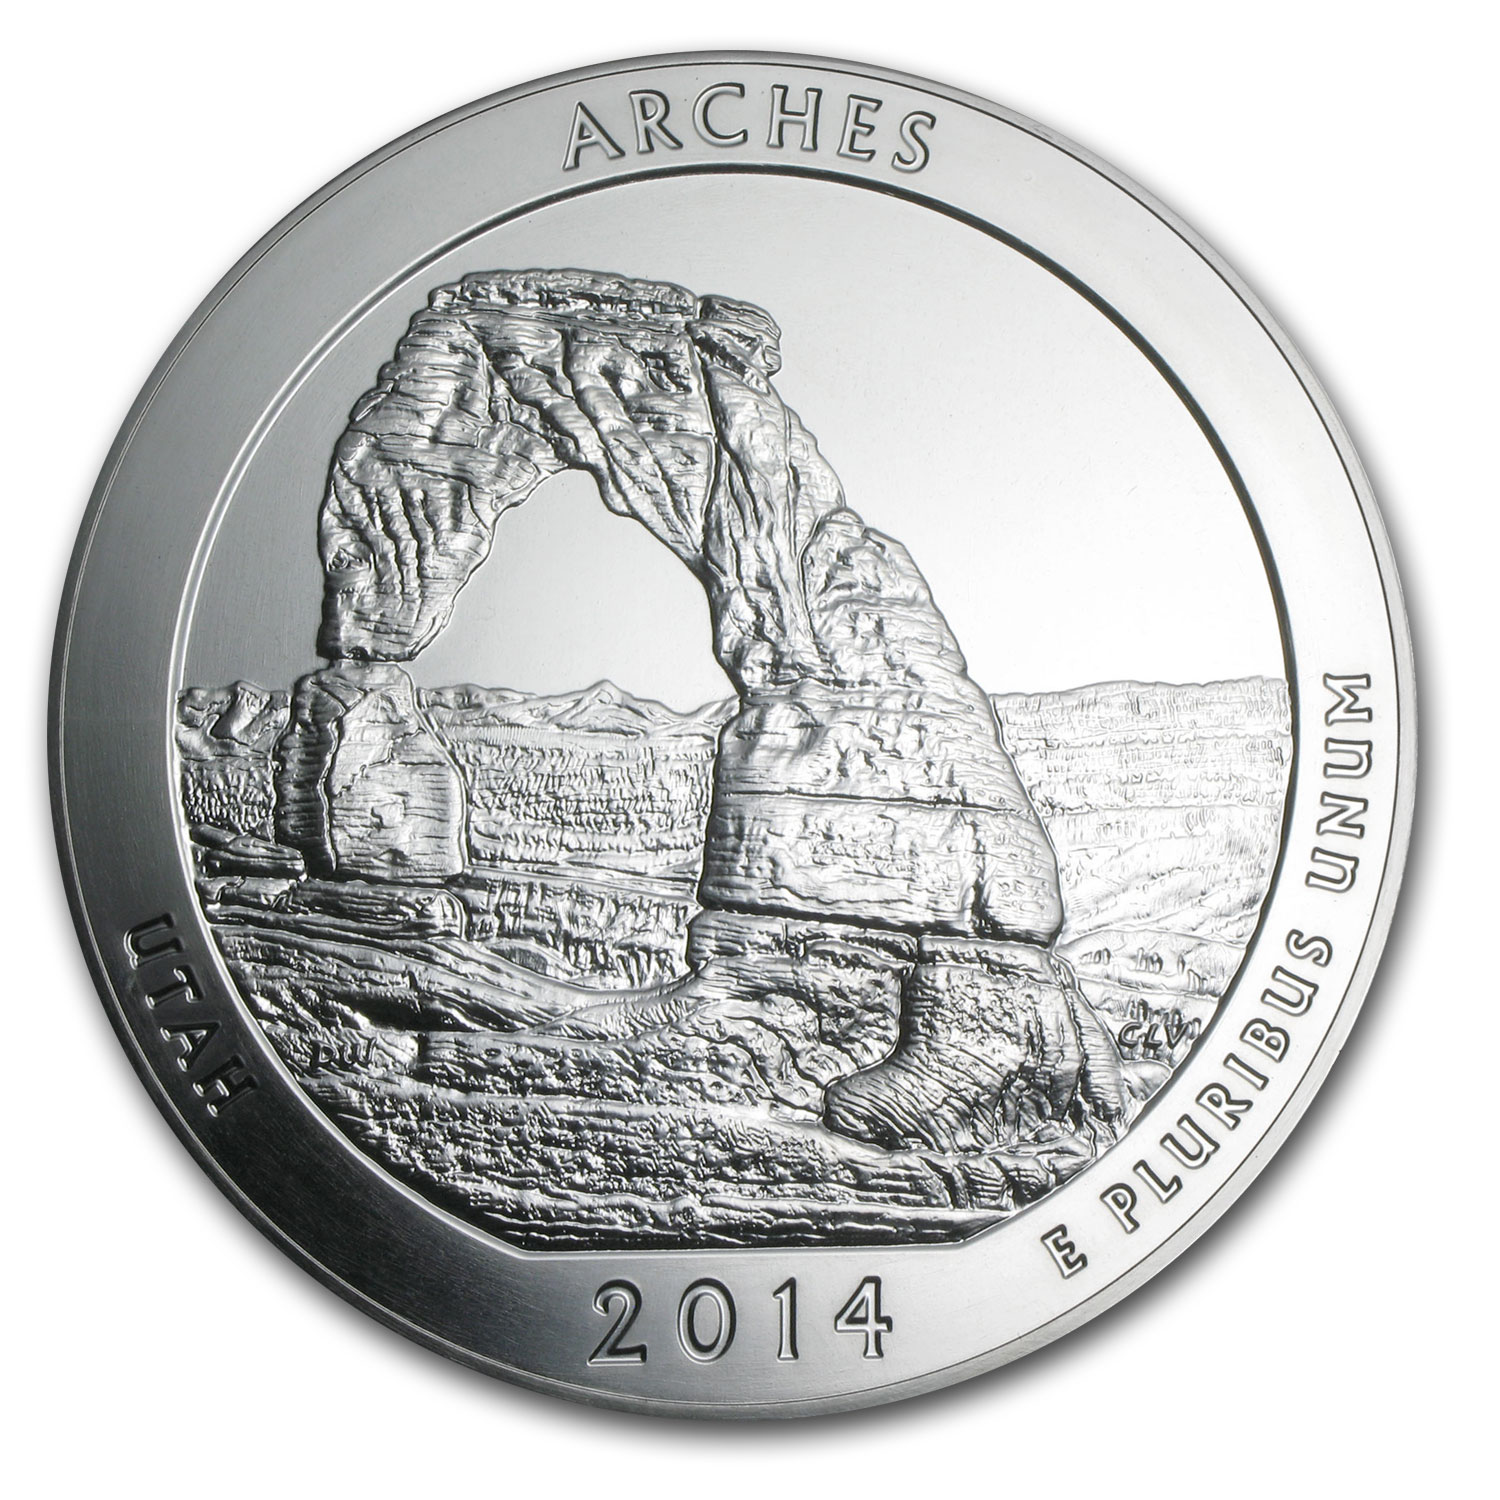 2014 5 oz Silver ATB Arches (Sealed Monster Box)